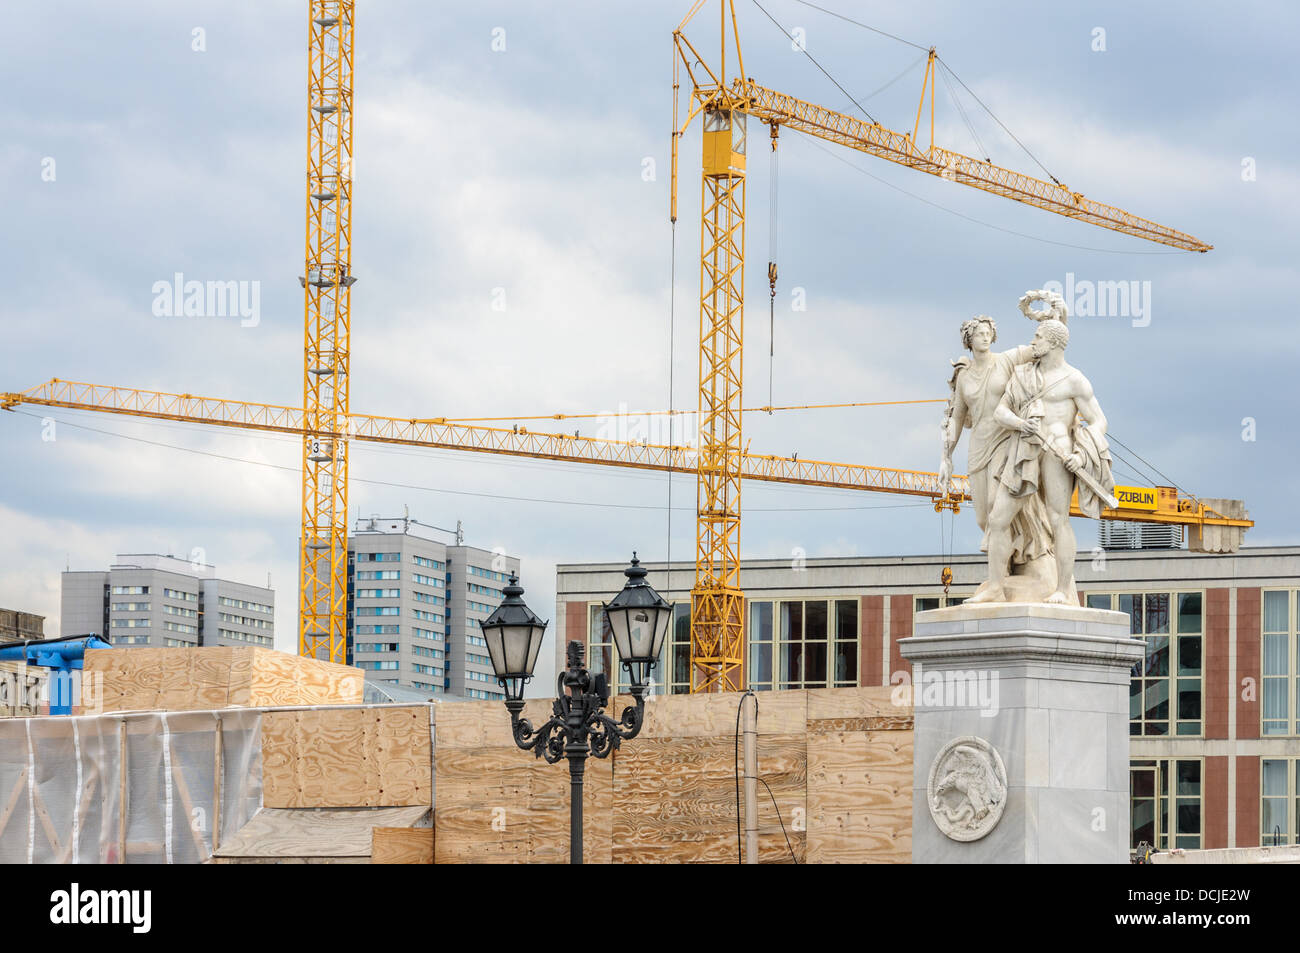 Construction site with tower cranes behind a historic statue and historical lighted street lamps - Berlin Germany Stock Photo